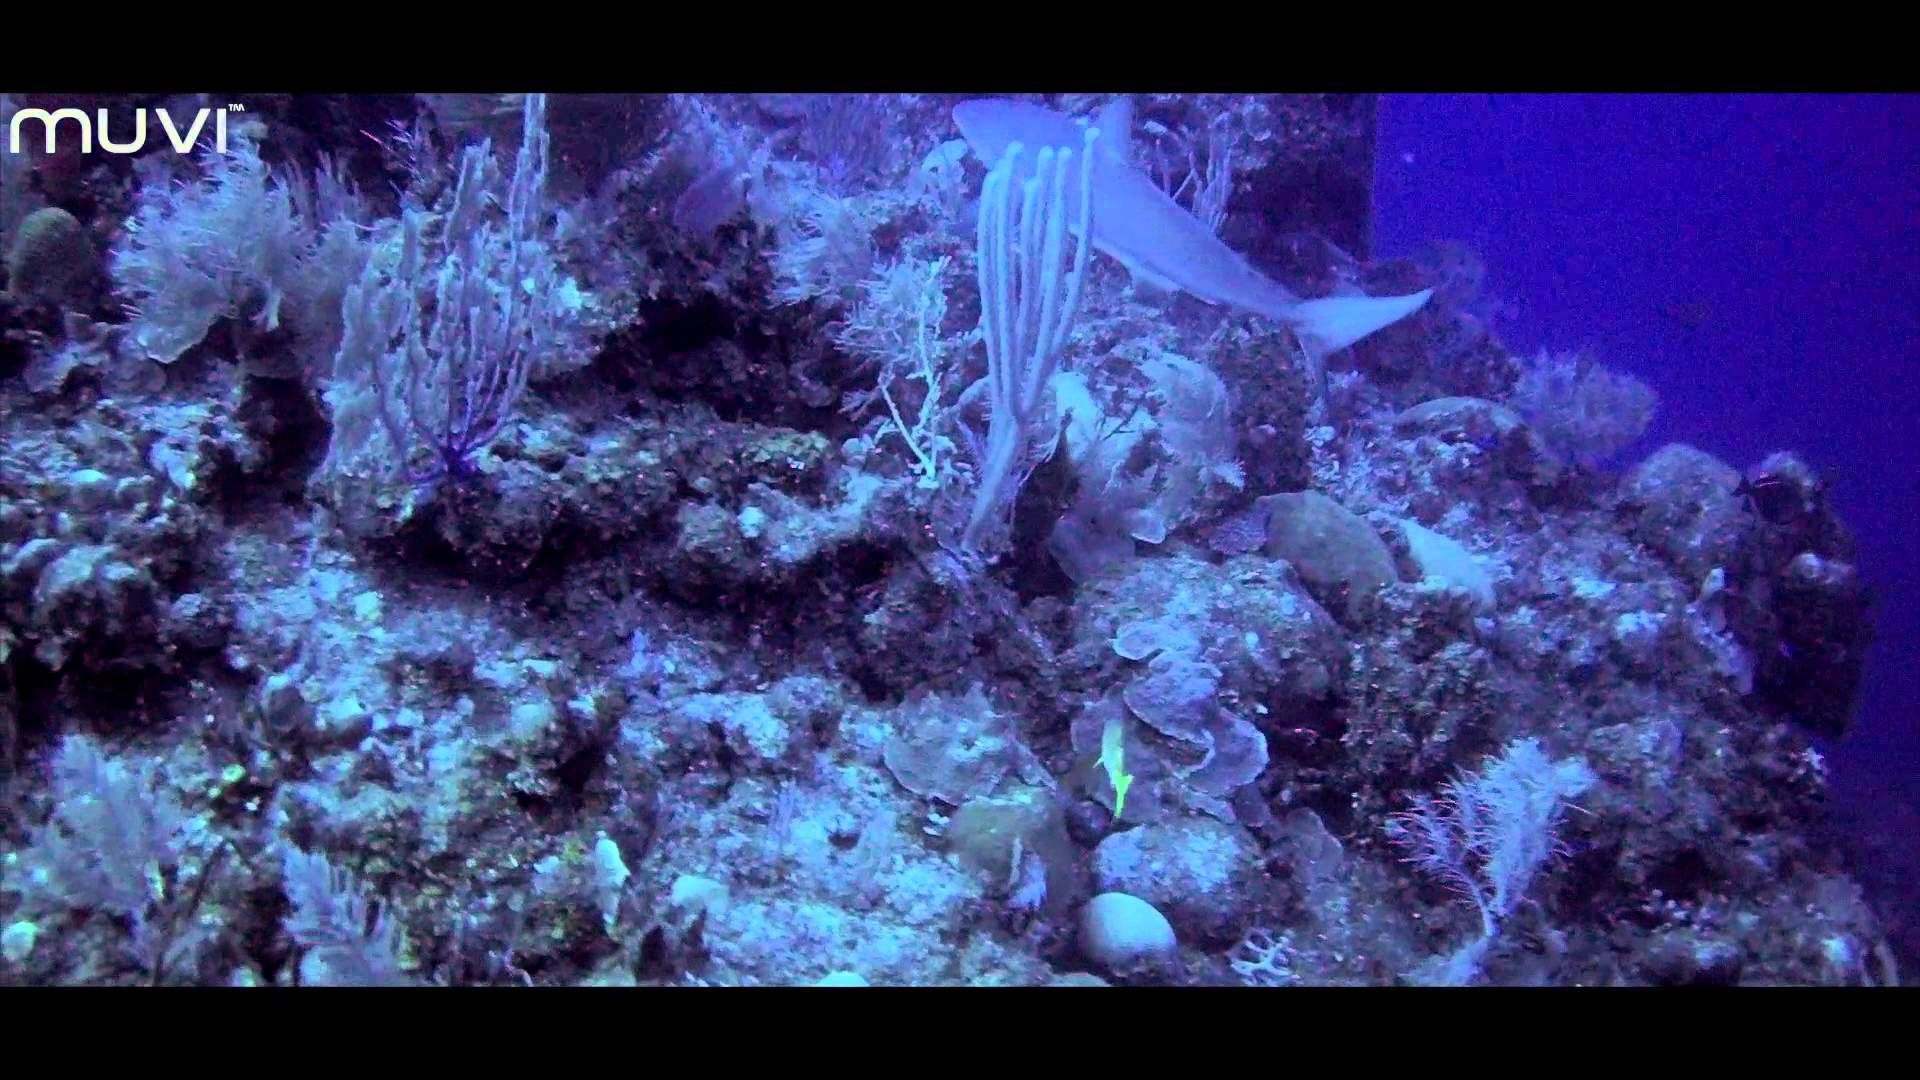 Veho MUVI HD hands free action camera: Cayman Islands – Scuba Diving